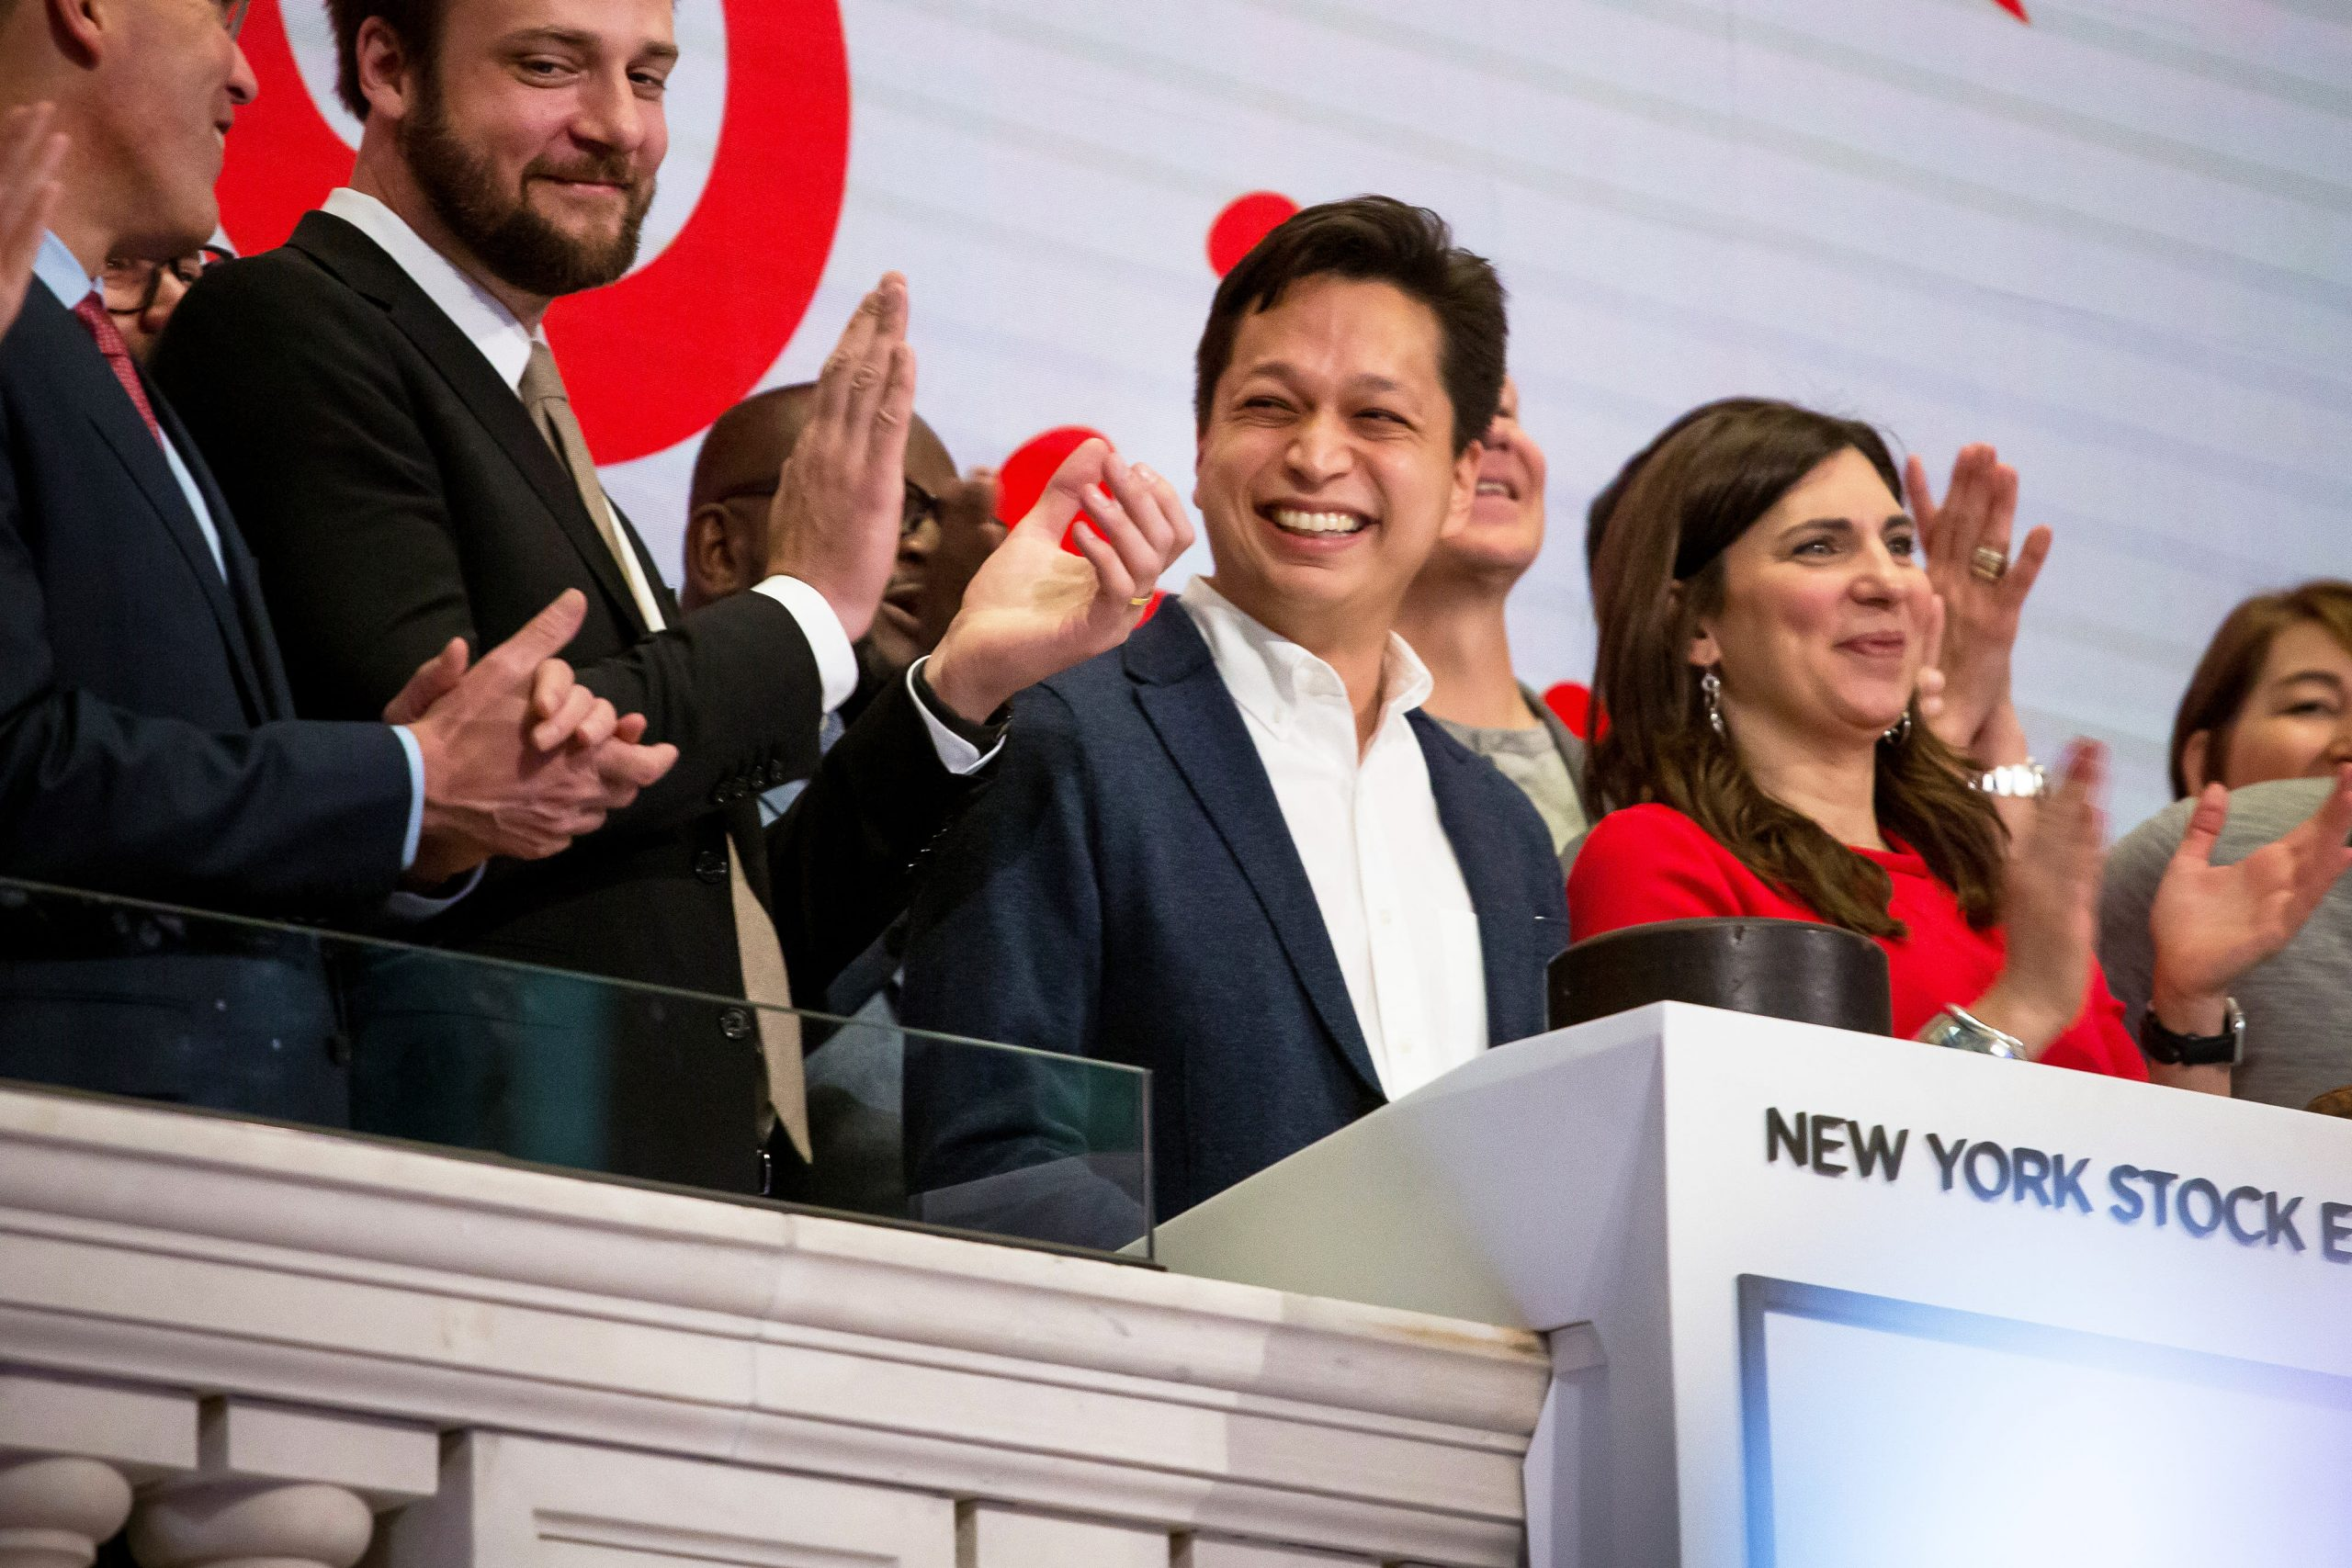 Pinterest Q4 2019 earnings